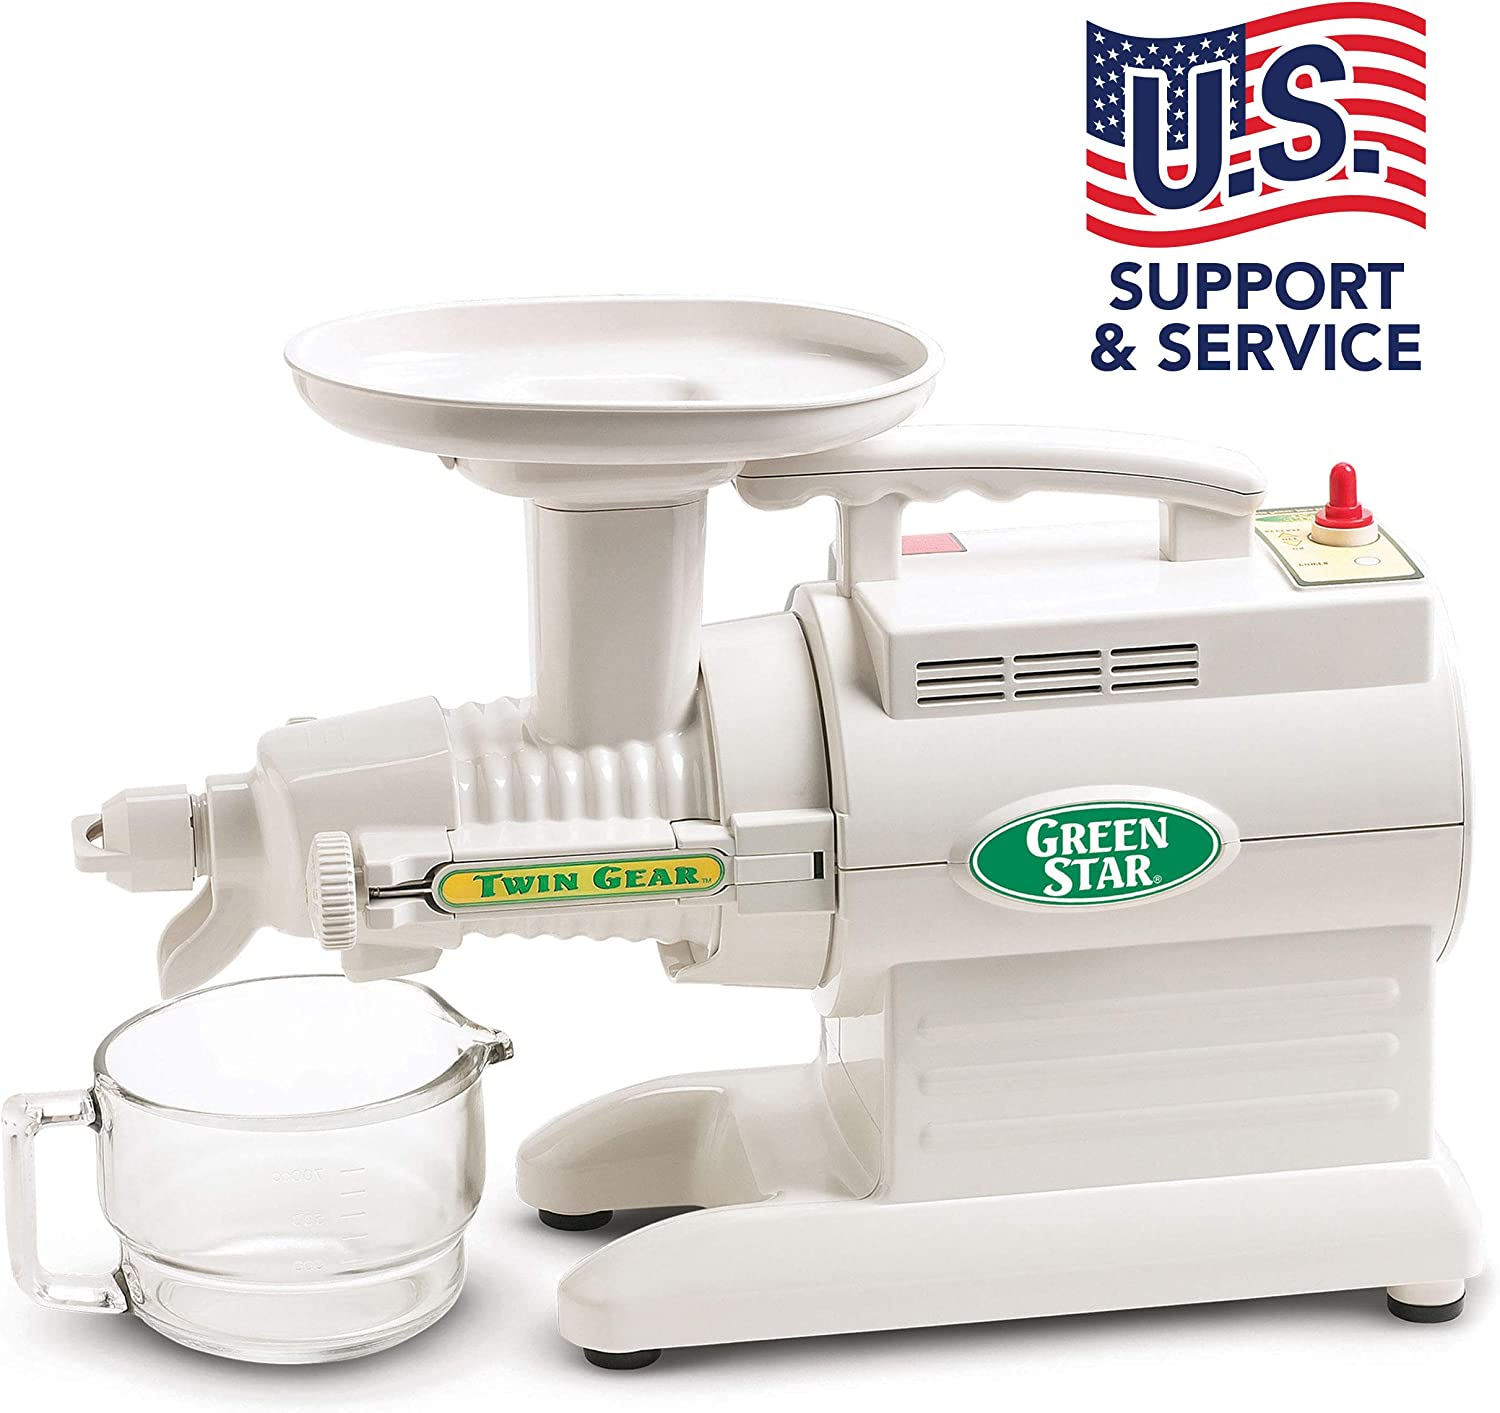 Tribest Green Star GS 1000 220V Basic Twin Gear Juice Extractor, 220V, NOT FOR USA USE (European Cord)